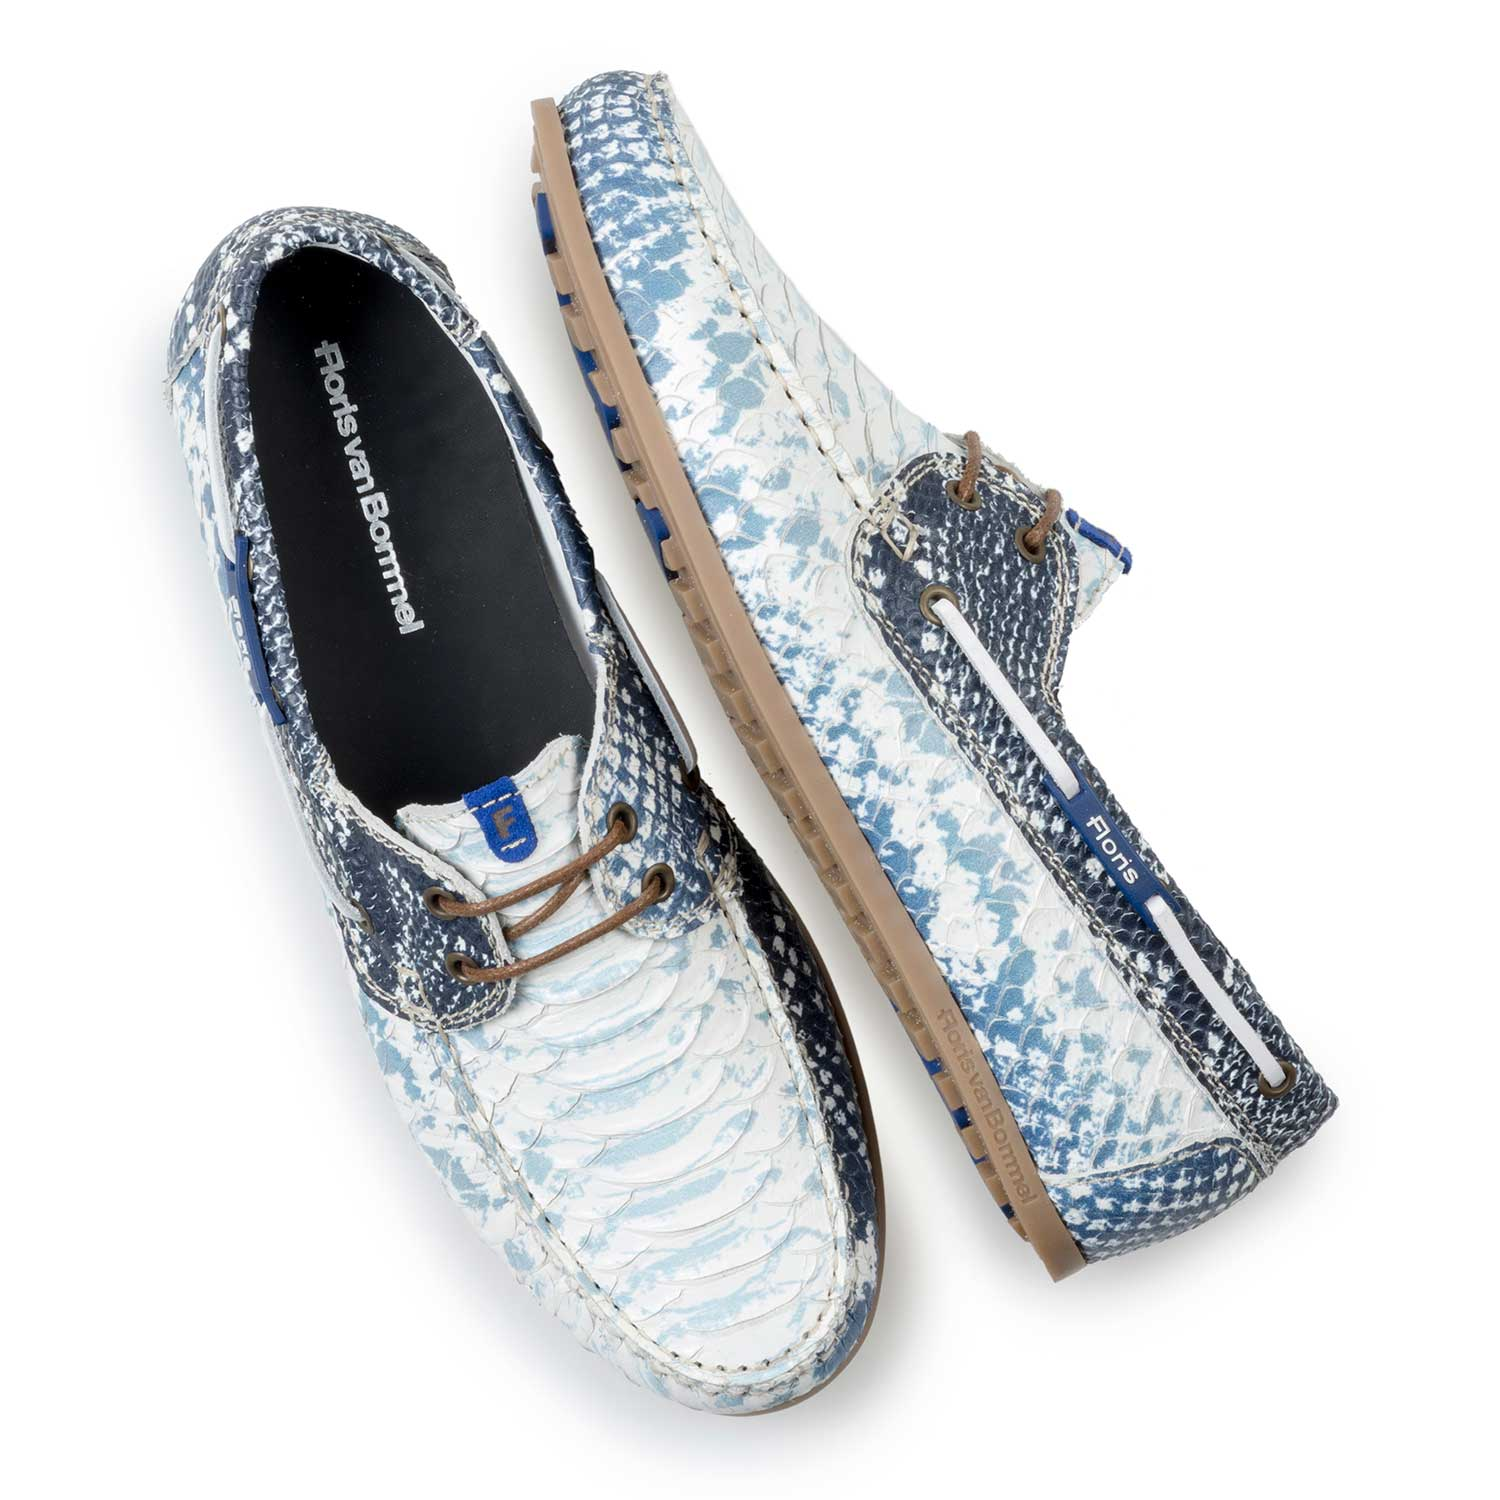 15035/06 - Dark blue leather boat shoe with snake print